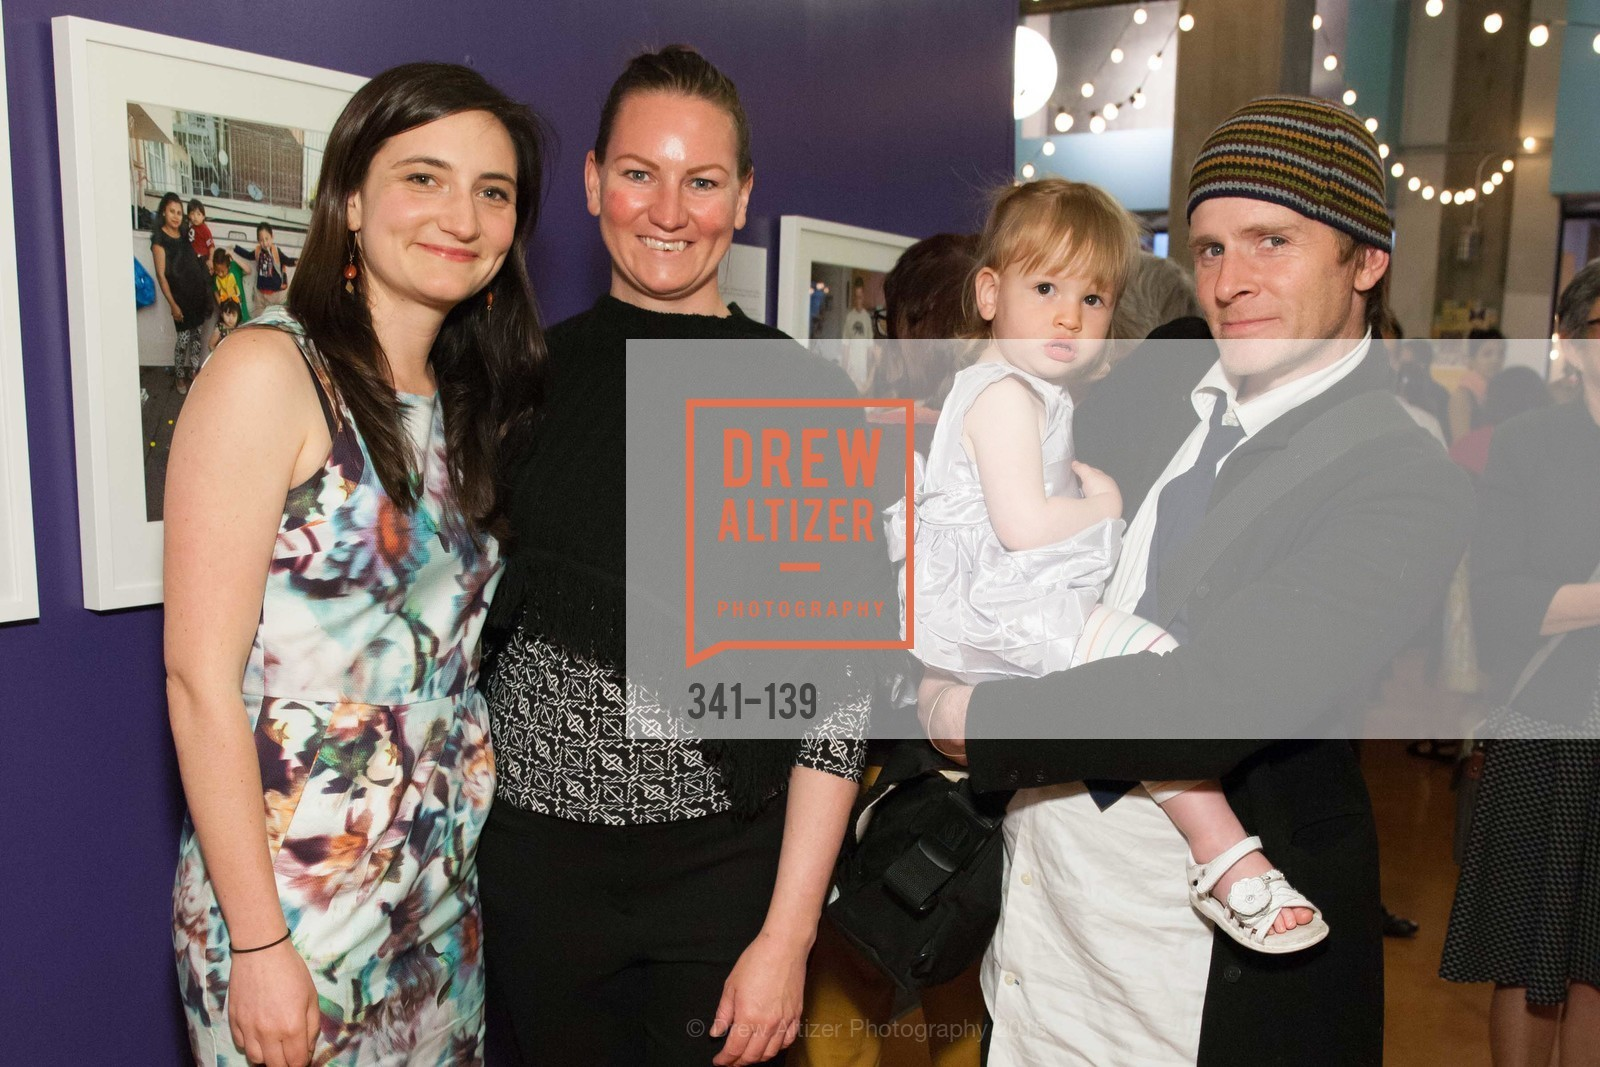 Johanna Jetton, Julianne Carus, Ann Louise Carus, Seth Carus, Homeless Prenatal Program Our House, Our Mission Gala, 2500 18th St, May 29th, 2015,Drew Altizer, Drew Altizer Photography, full-service agency, private events, San Francisco photographer, photographer california